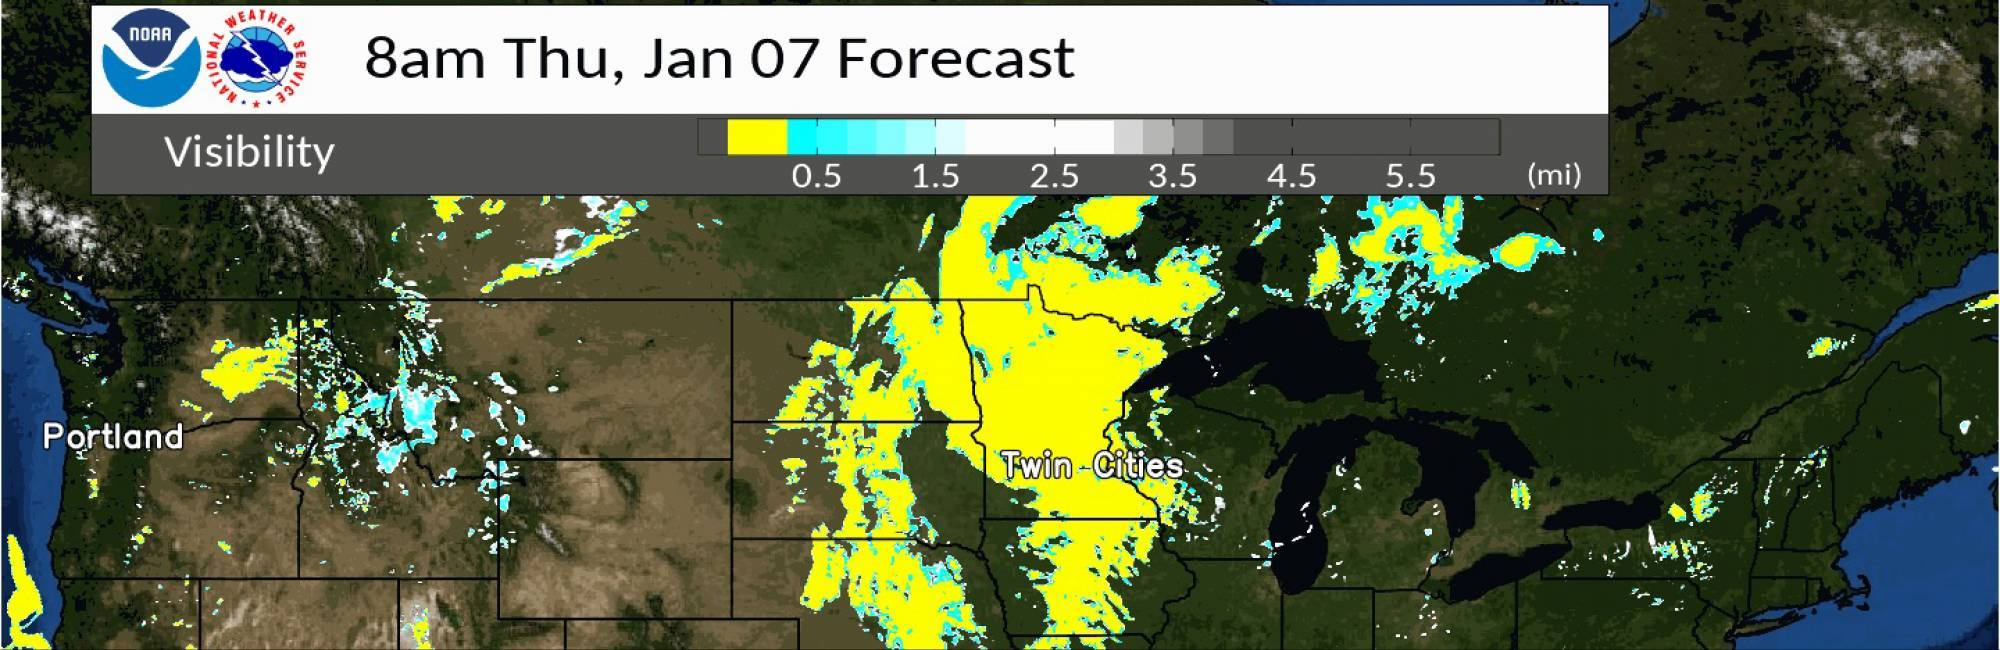 Map of the northern United States showing a forecast from the operational NOAA High Resolution Rapid Refresh weather model. Areas in yellow on the map indicate where visibility is predicted to be less than a 1/2 mile,